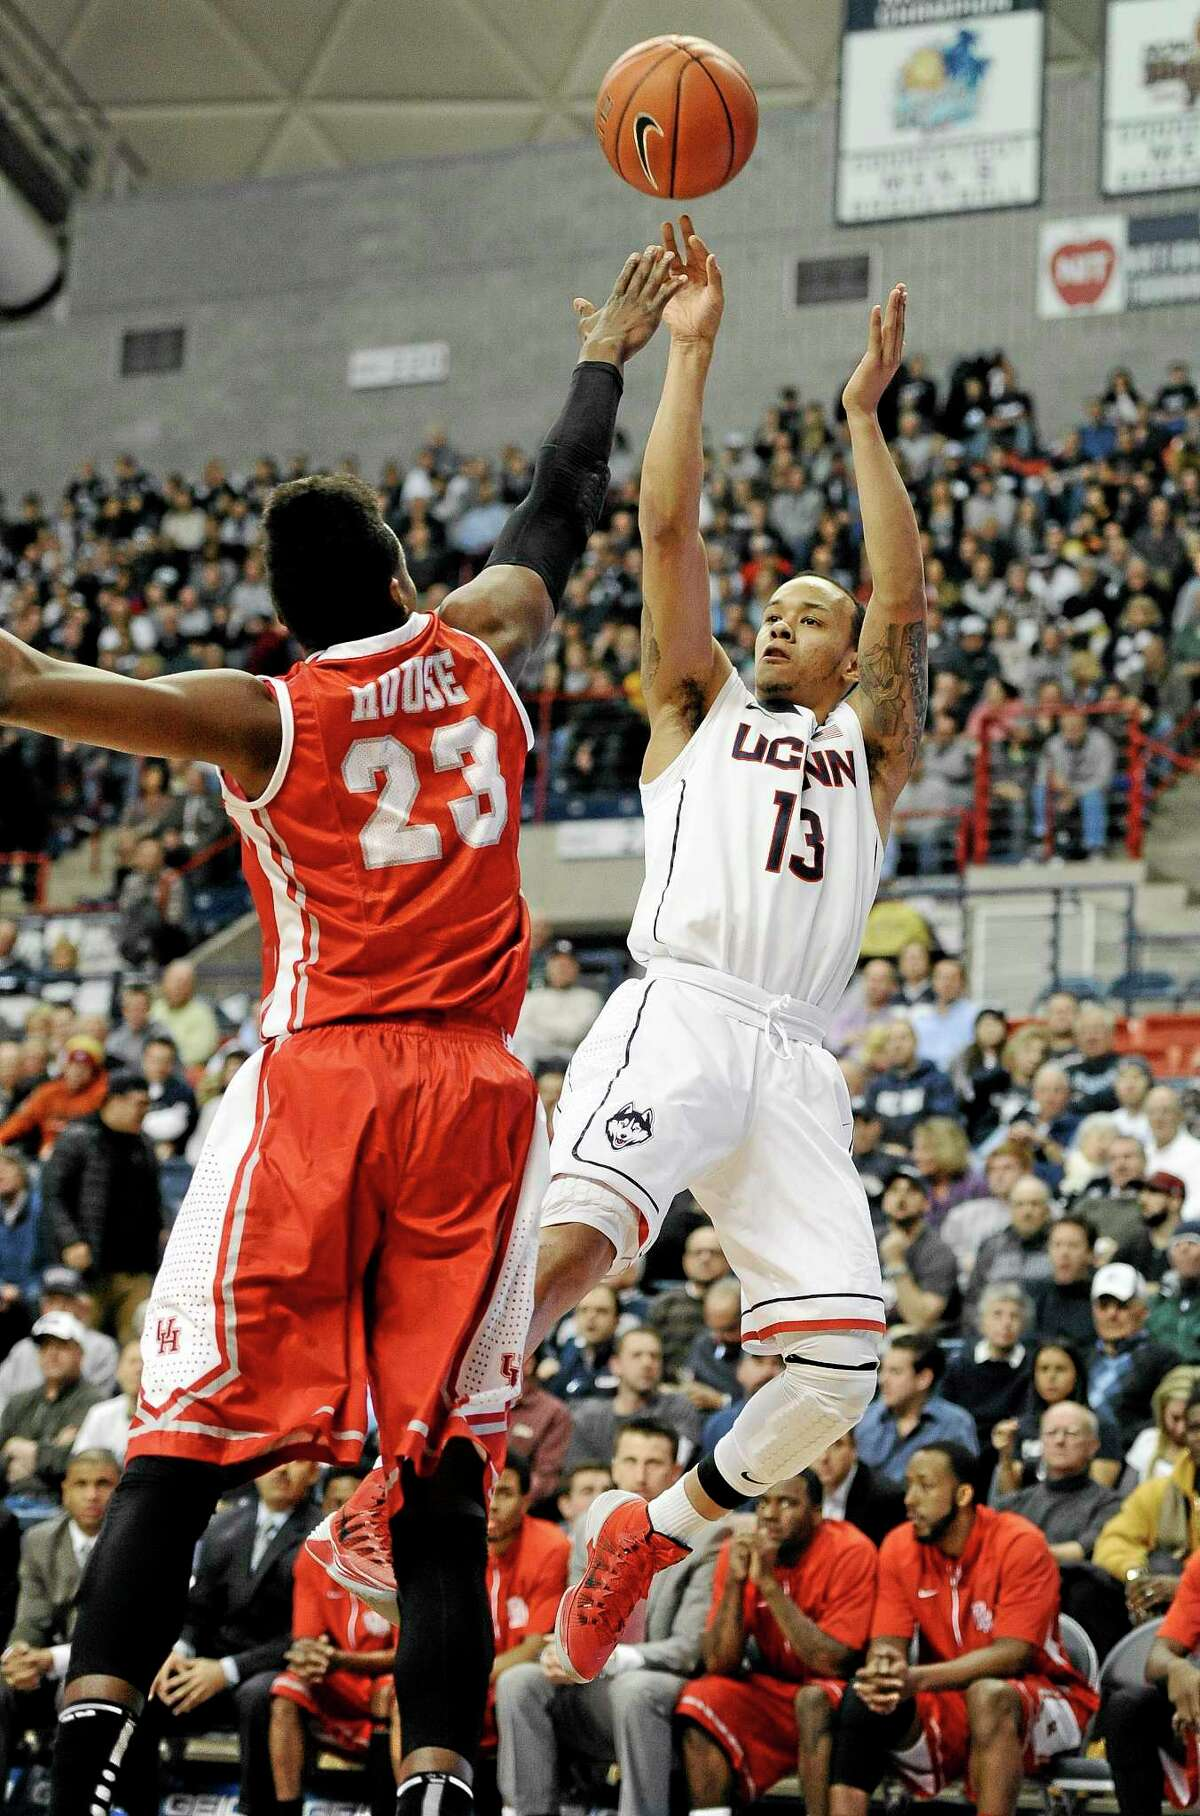 UConn's Shabazz Napier shoots over Houston's Danuel House during the first half of Thursday's game in Storrs.